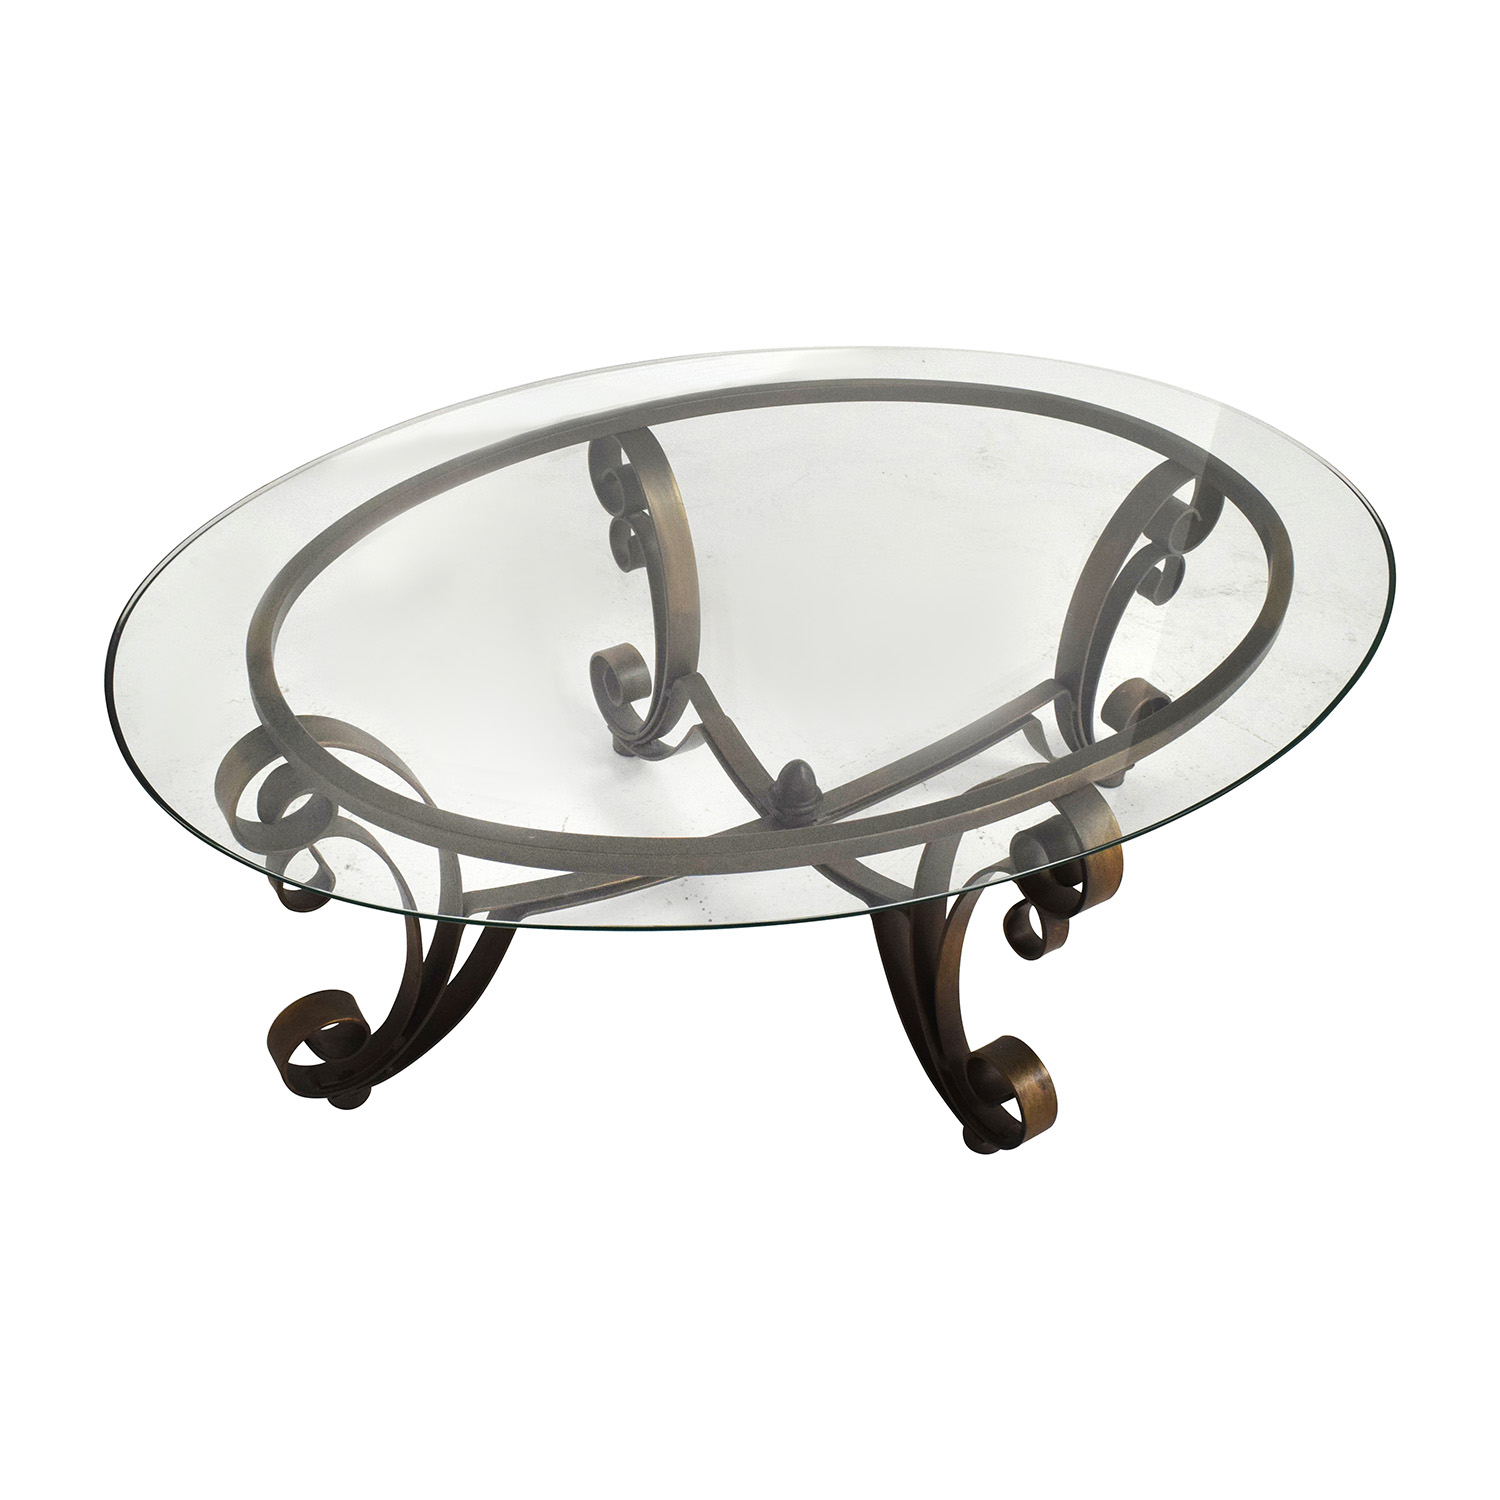 OFF Rooms to go Rooms to Go Metal Oval Coffee Table Tables